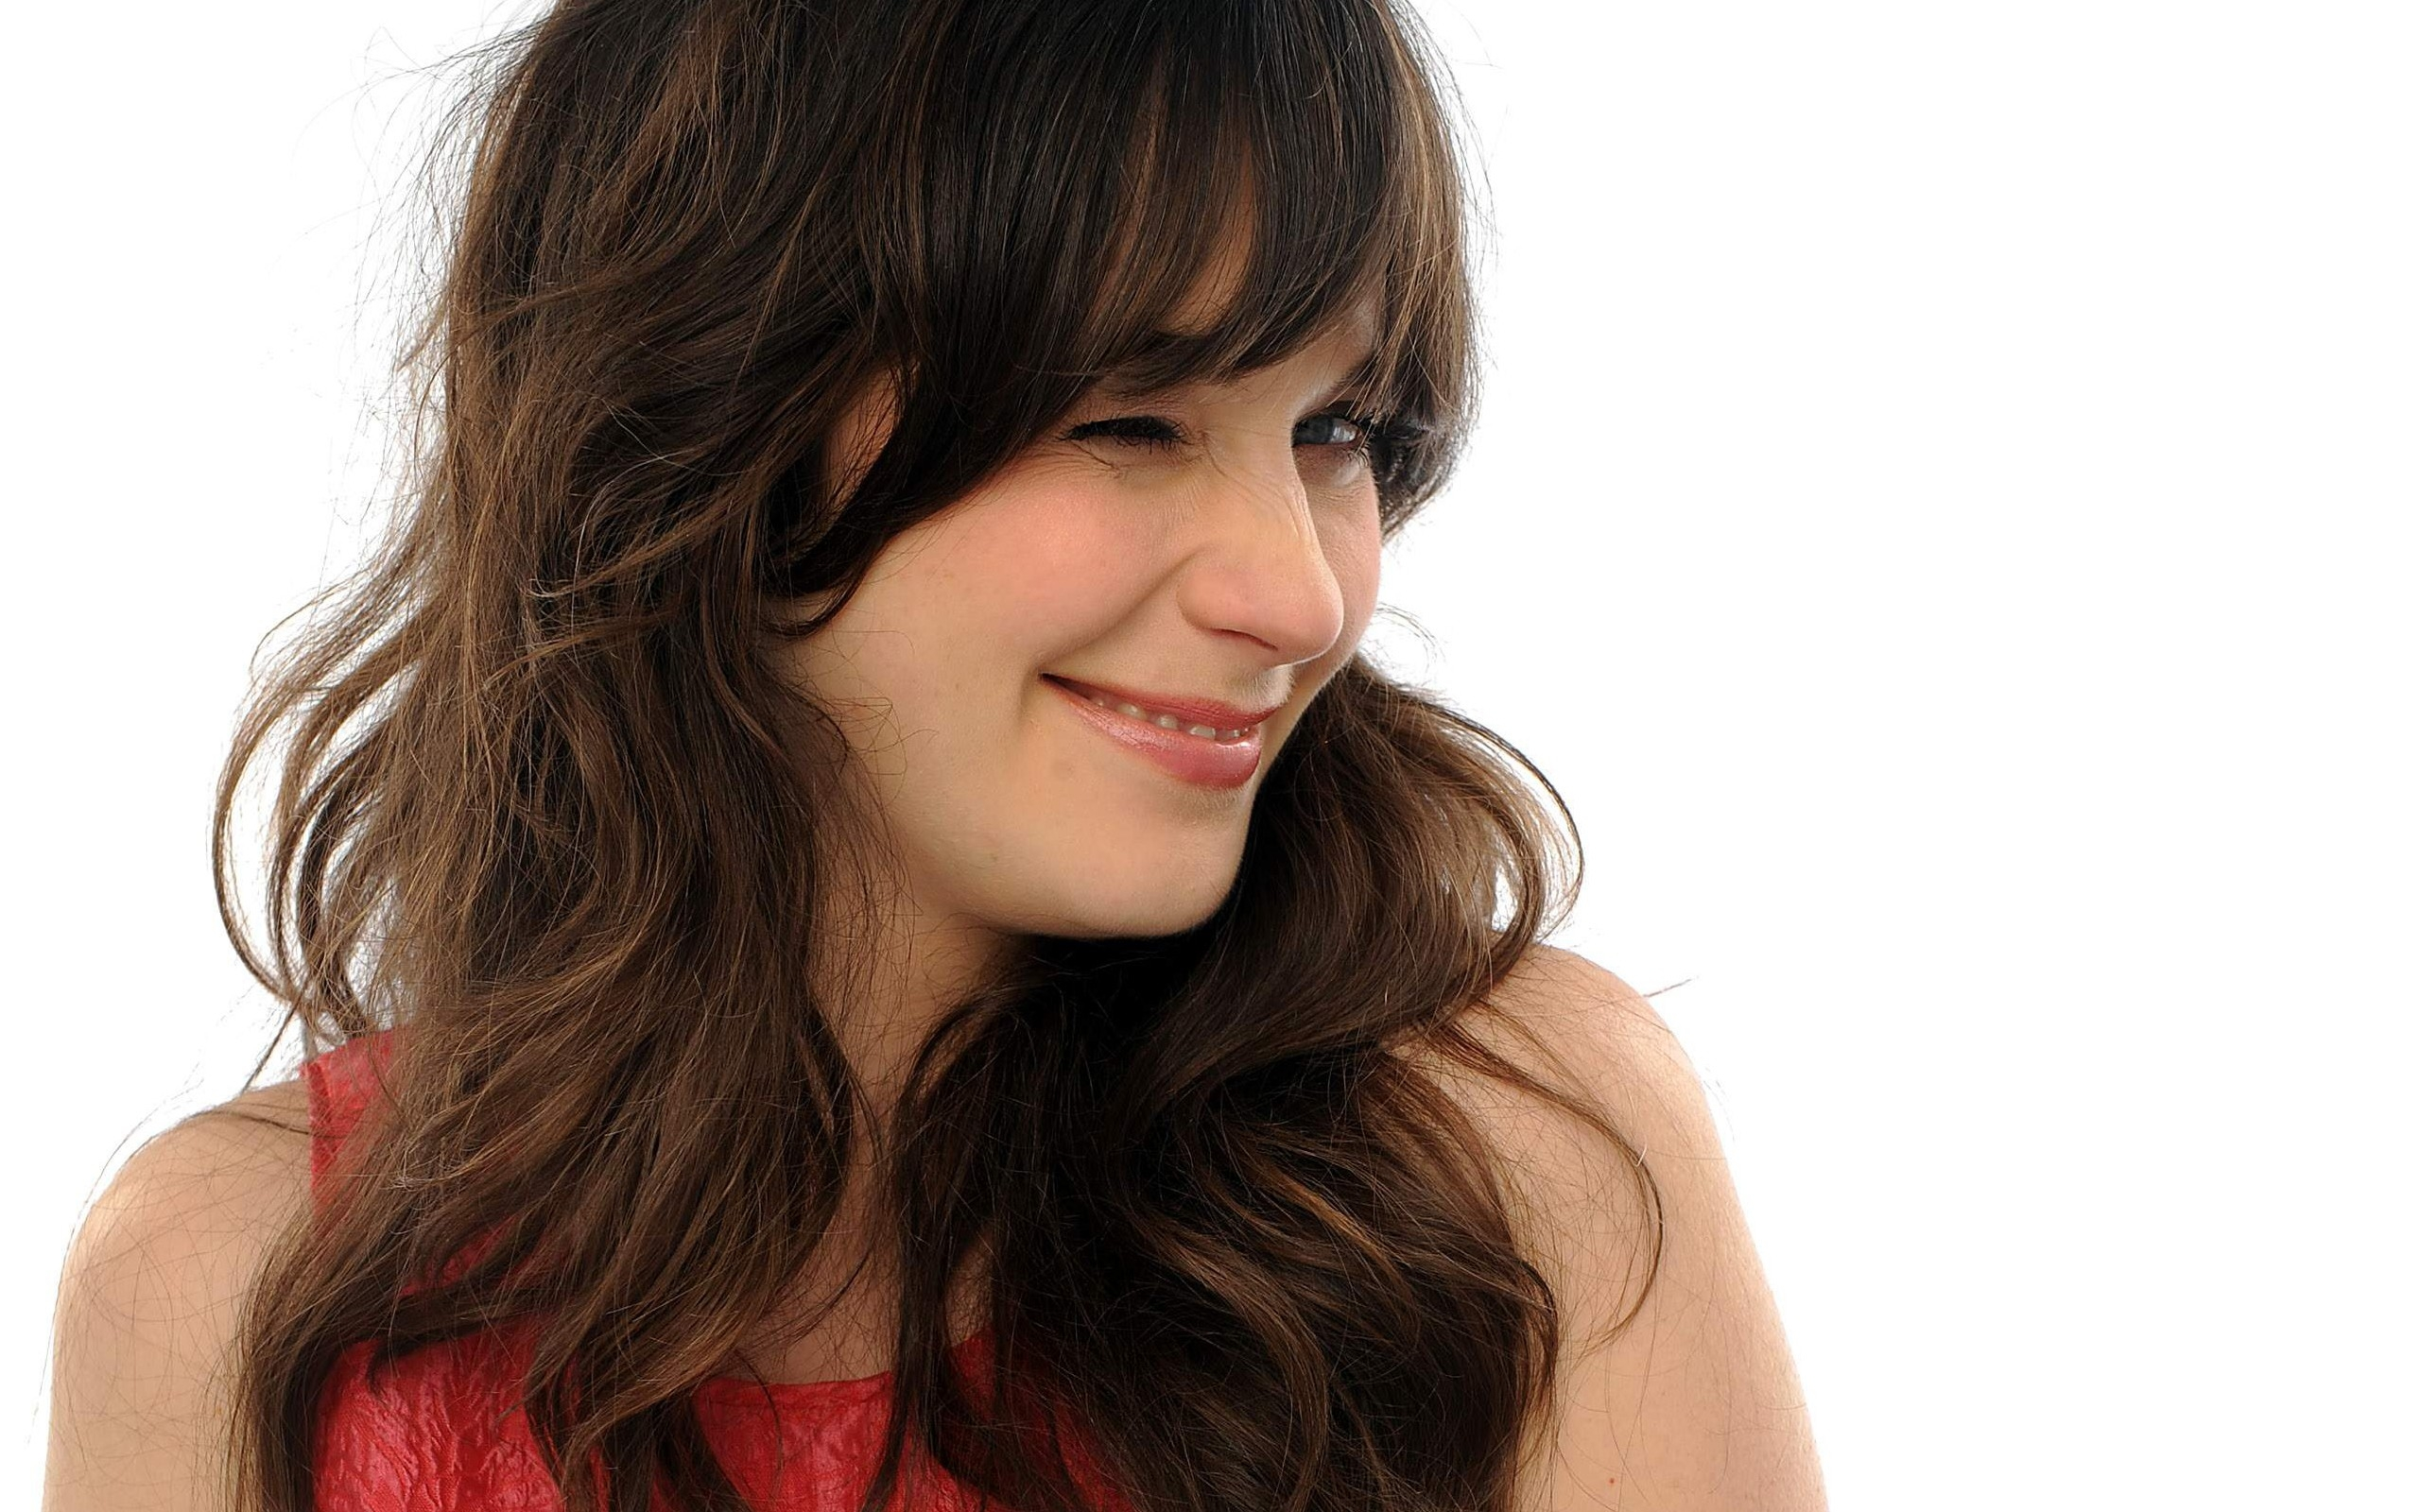 Zooey Deschanel Wallpapers High Quality | Download Free